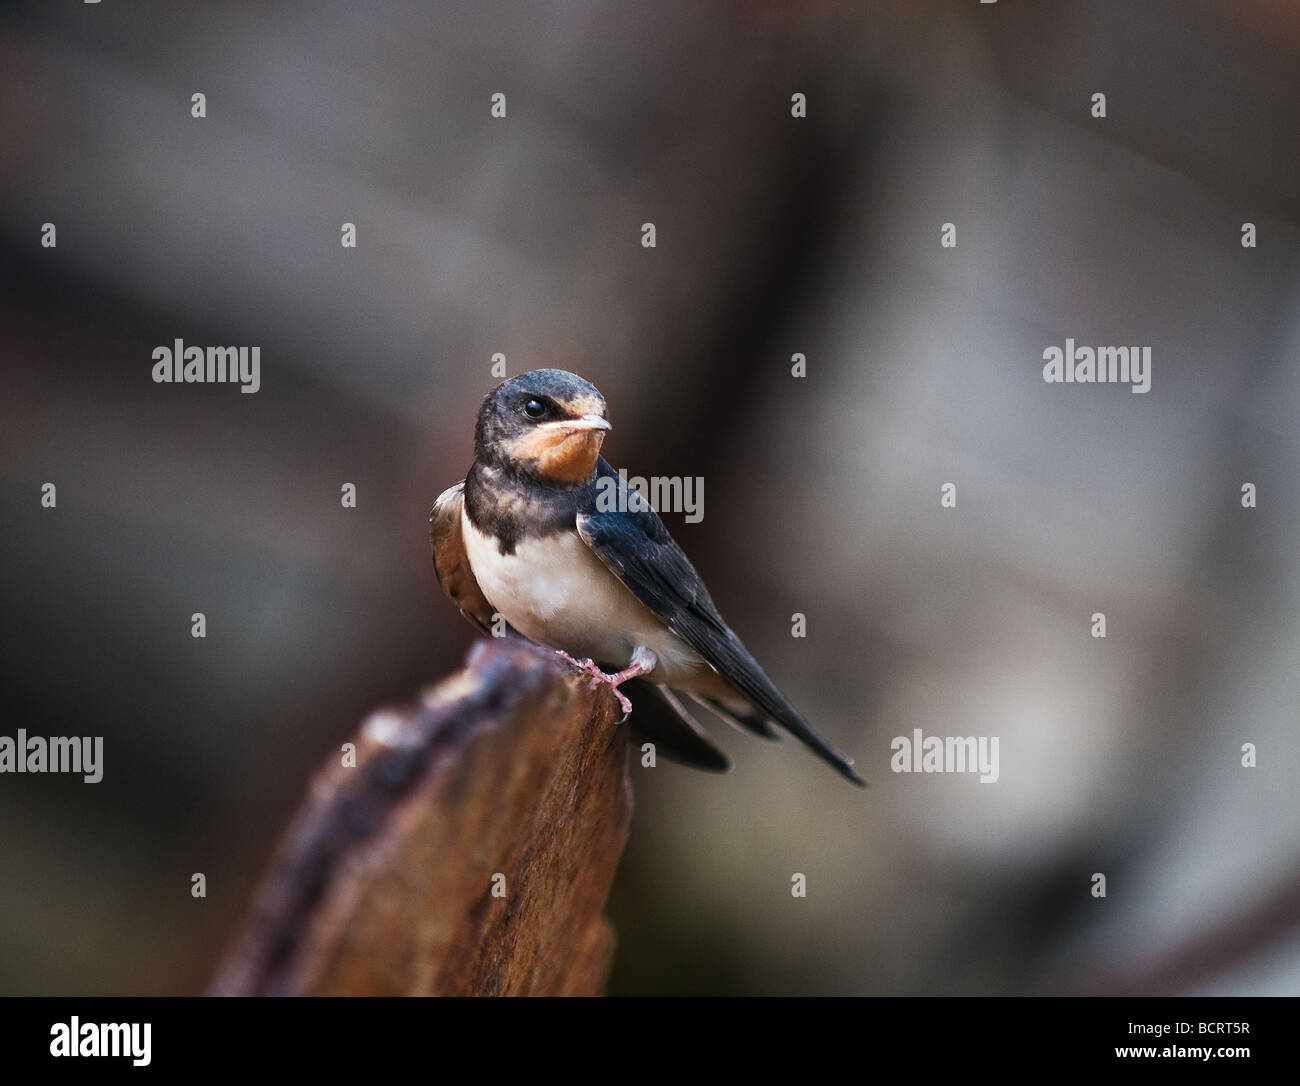 A House Martin perched on an old plank of wood.  Photo by Gordon Scammell - Stock Image